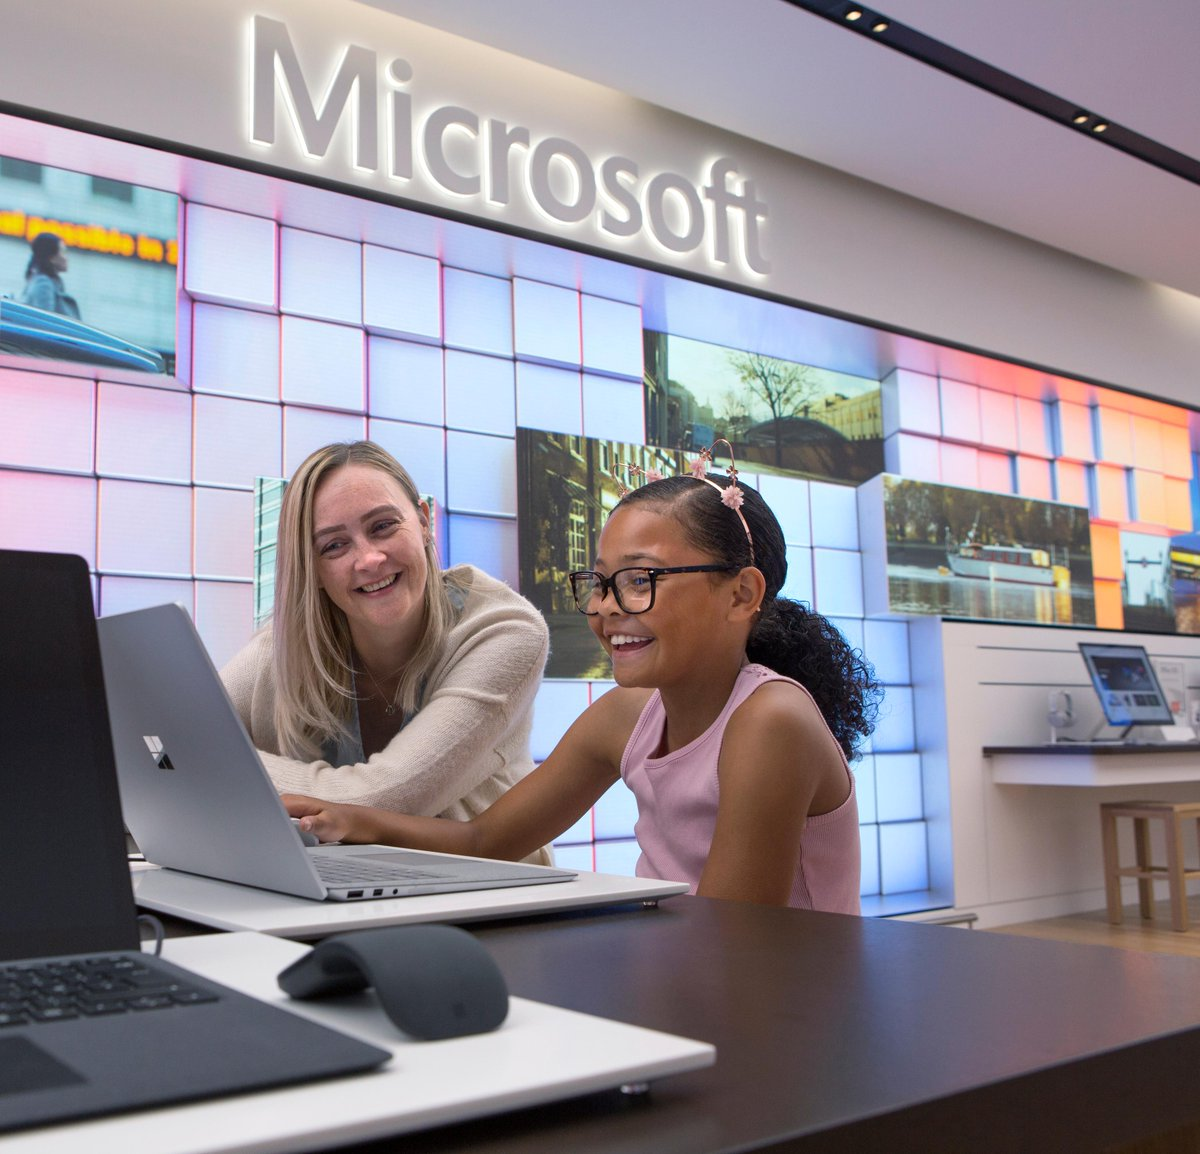 Your first look inside #Microsoft's new London Flagship Store: http://msft.it/6019TzeDX